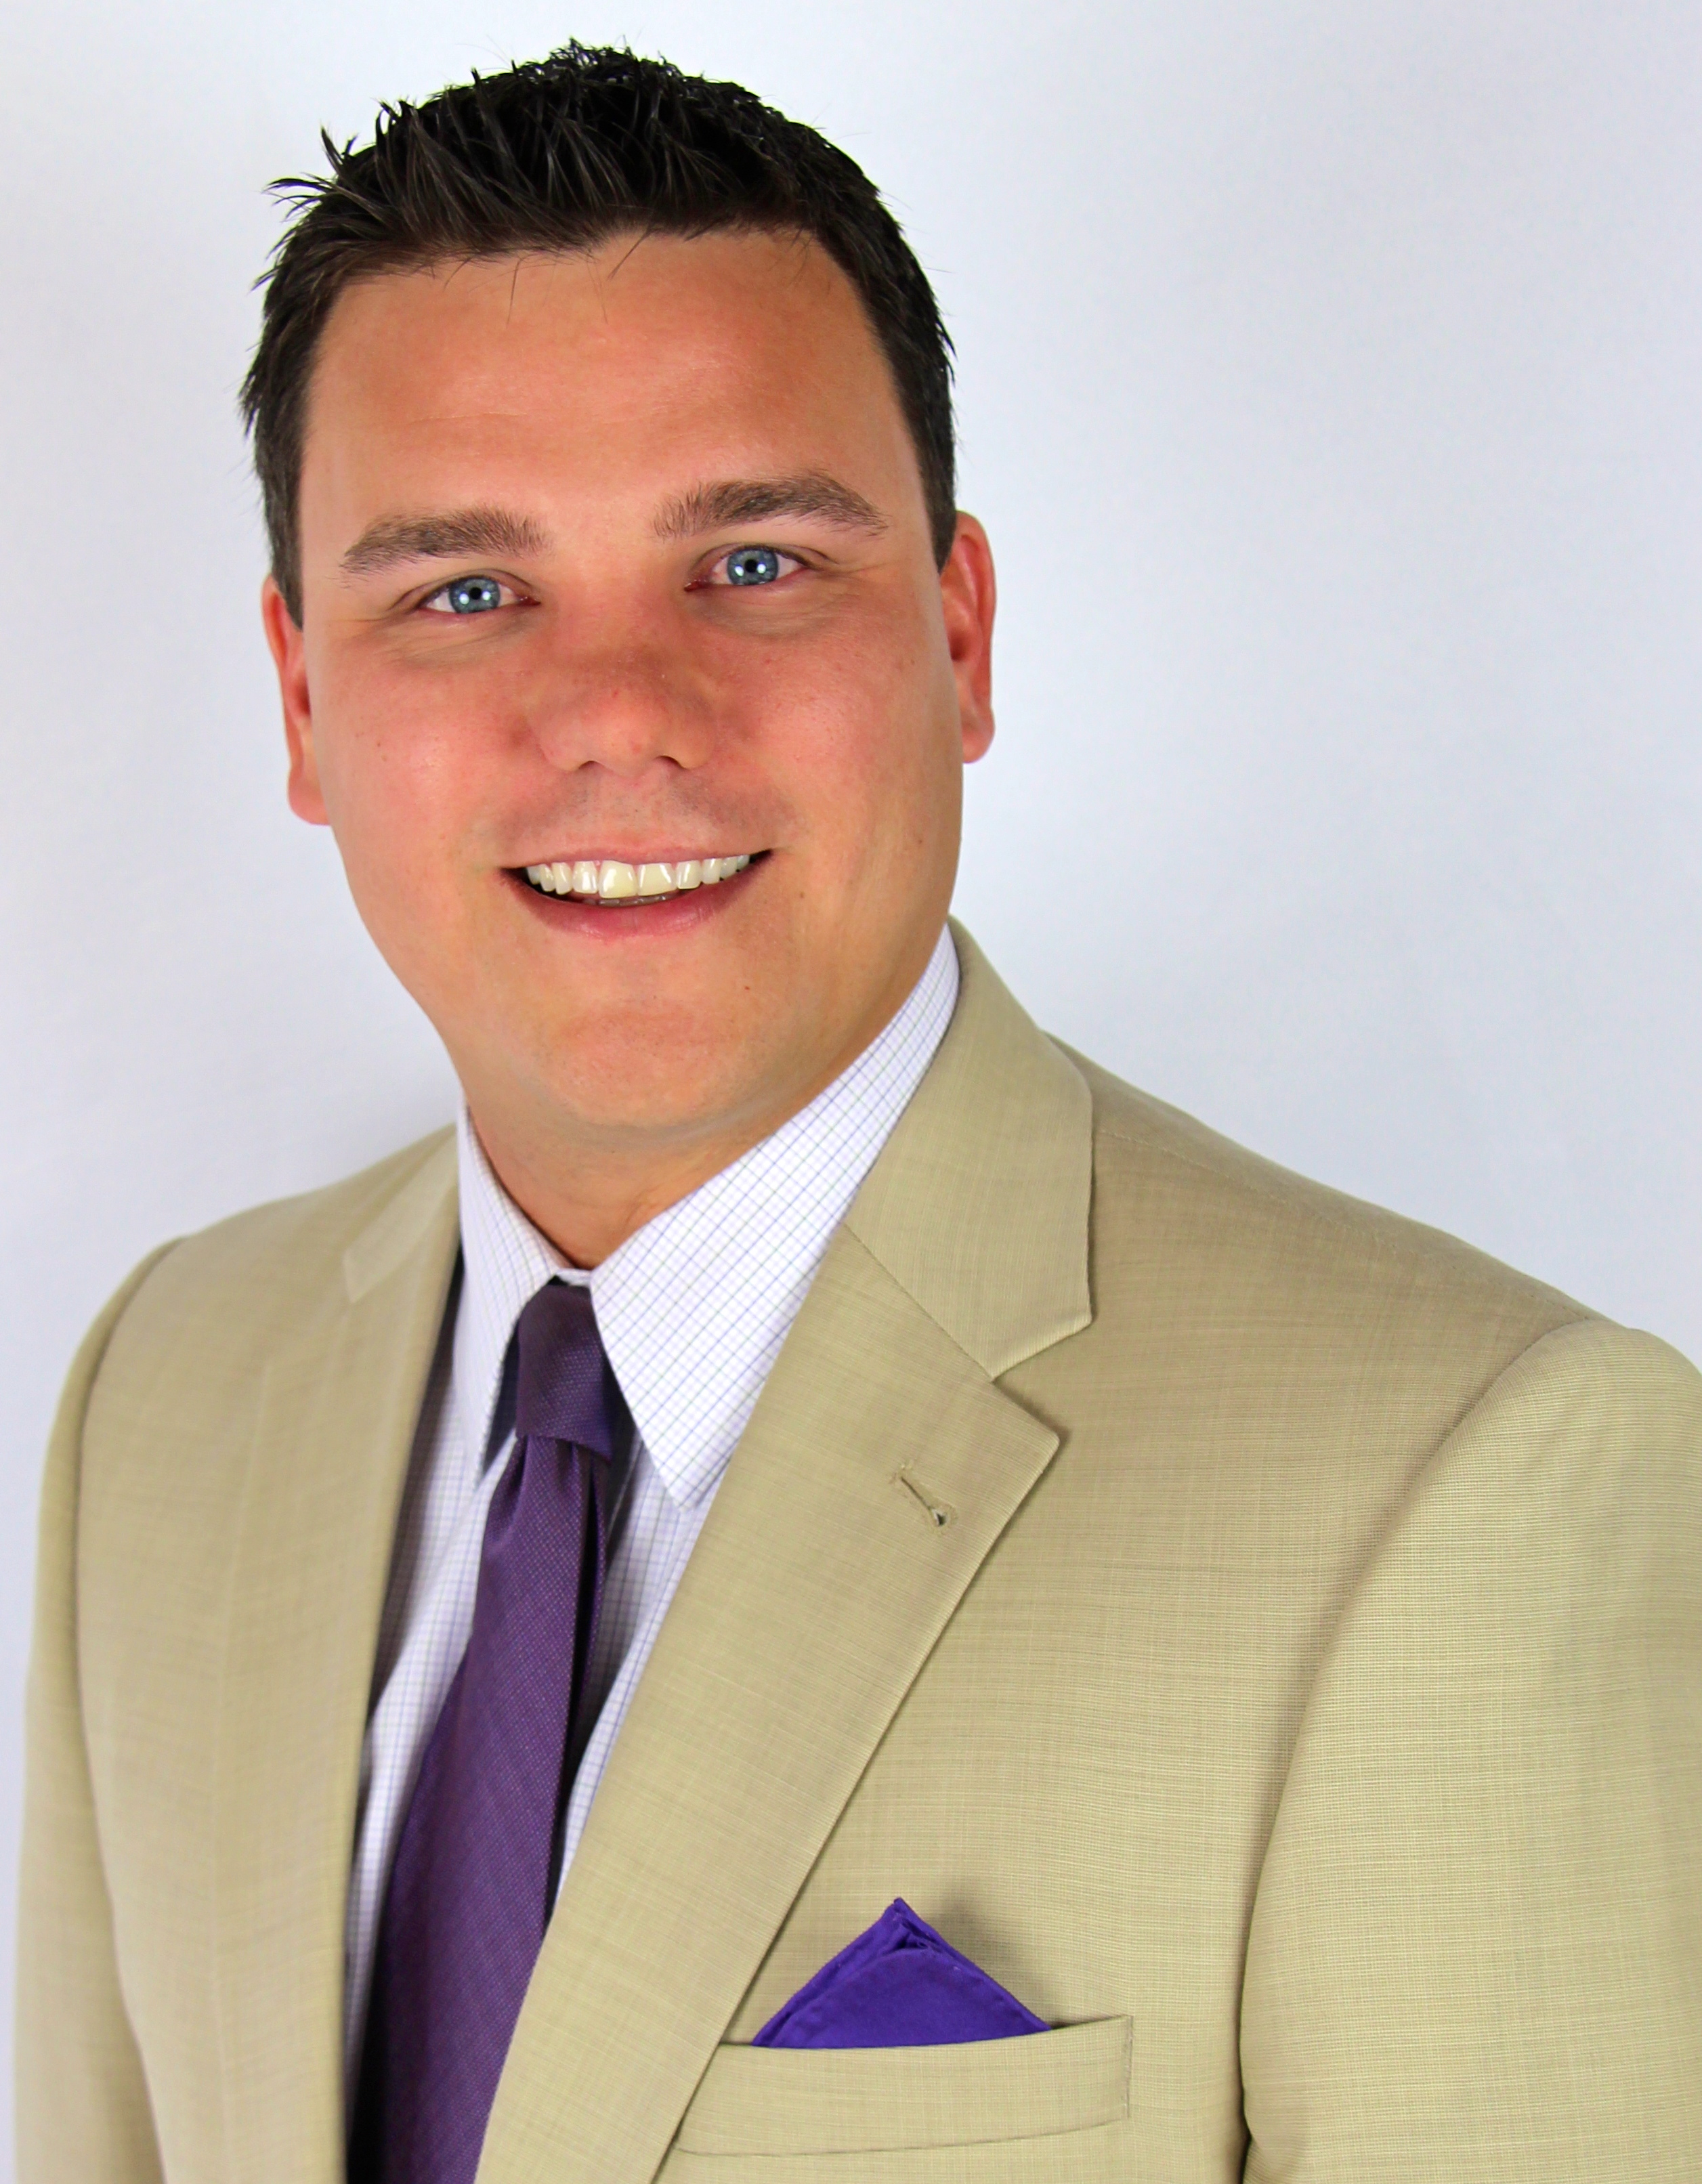 Justin Blews, financial advisor Boca Raton FL